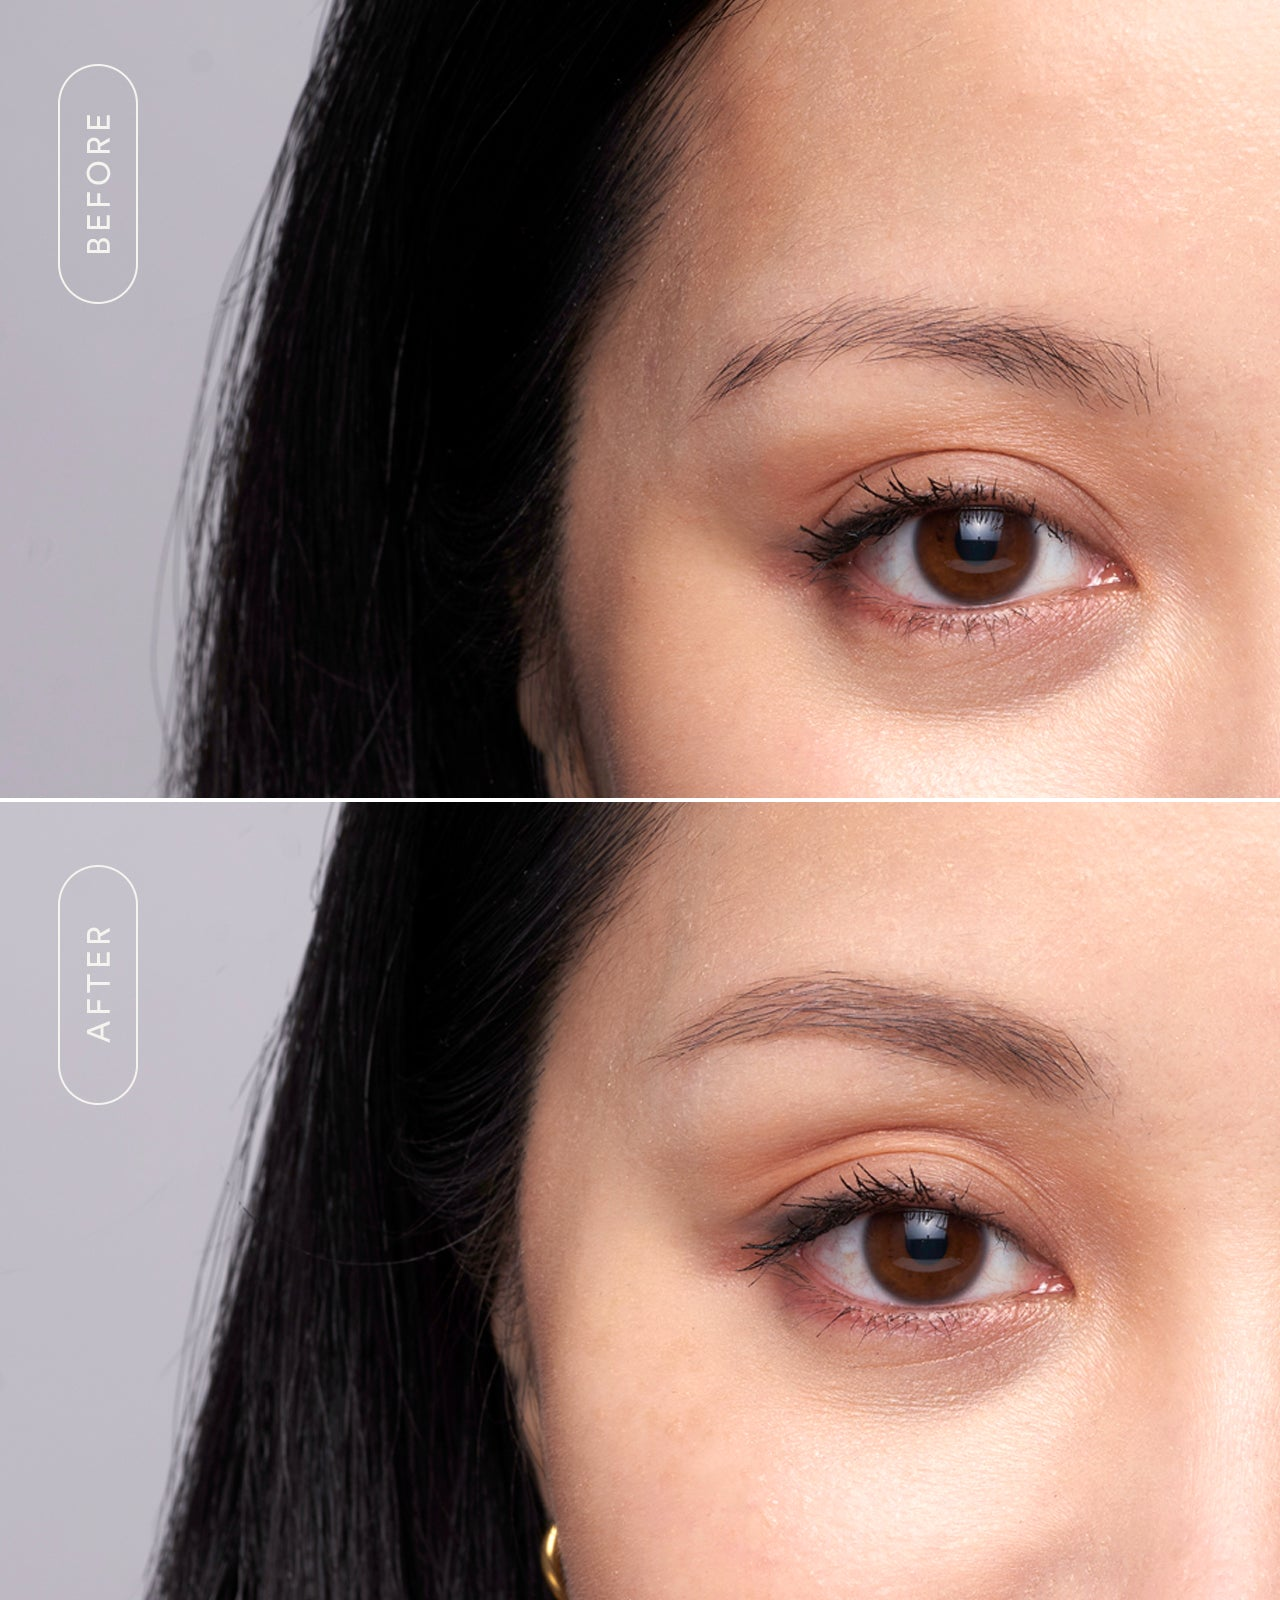 flexibrow-clear-brow-gel-michelle-phan-before-after-1